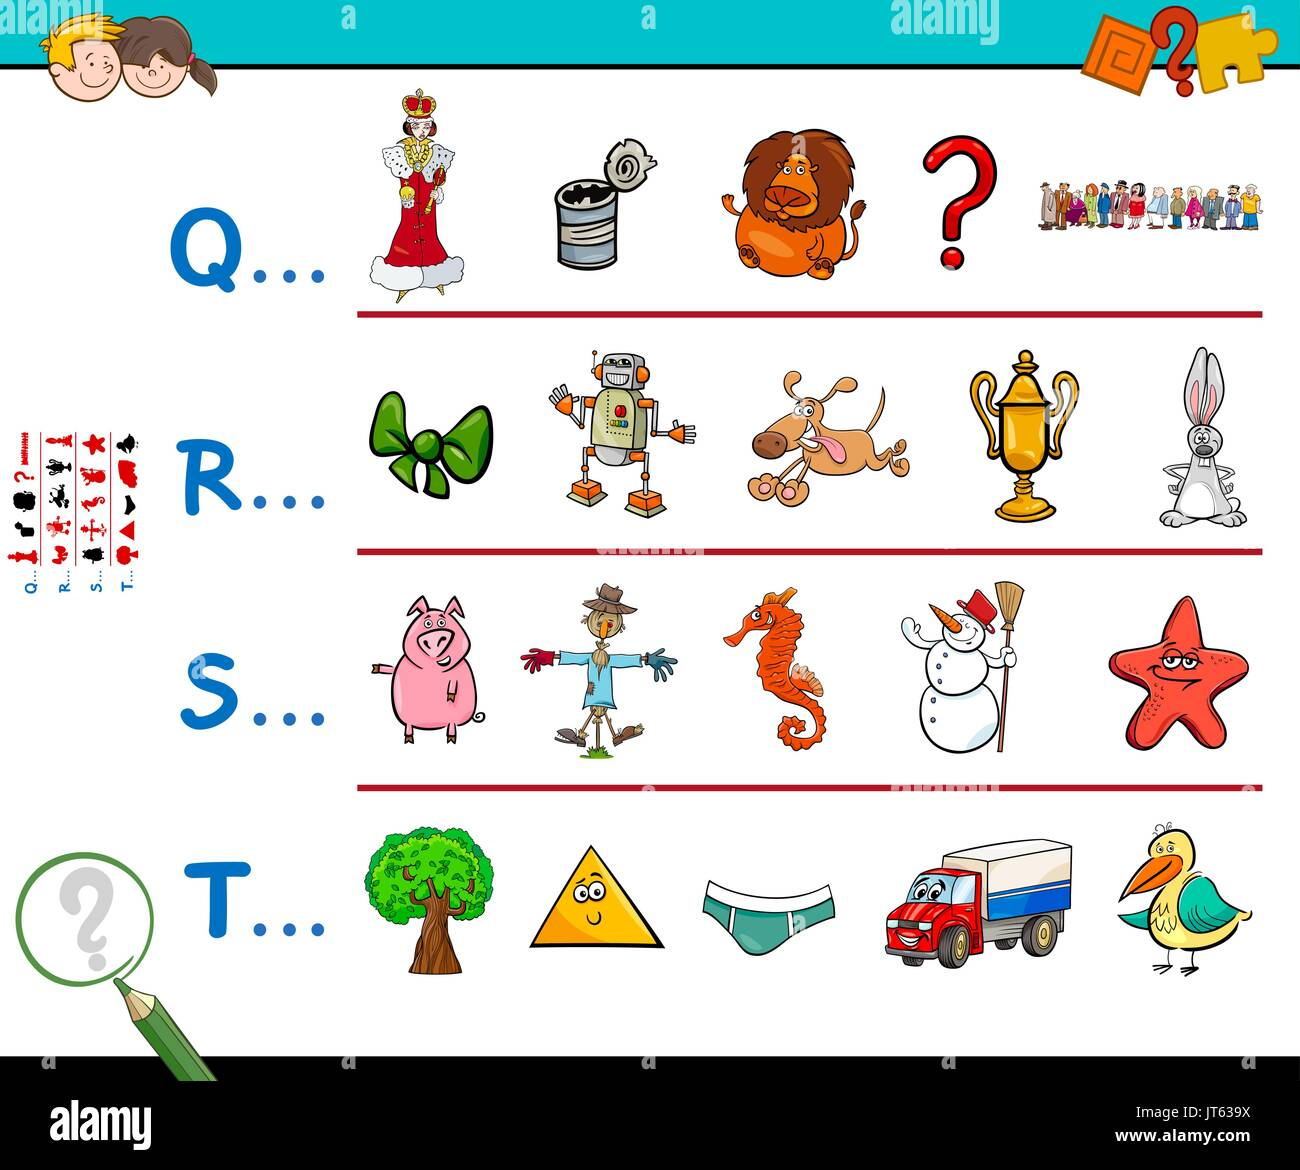 Cartoon Character Names With B: Names Of Cartoon Characters That Start With The Letter R